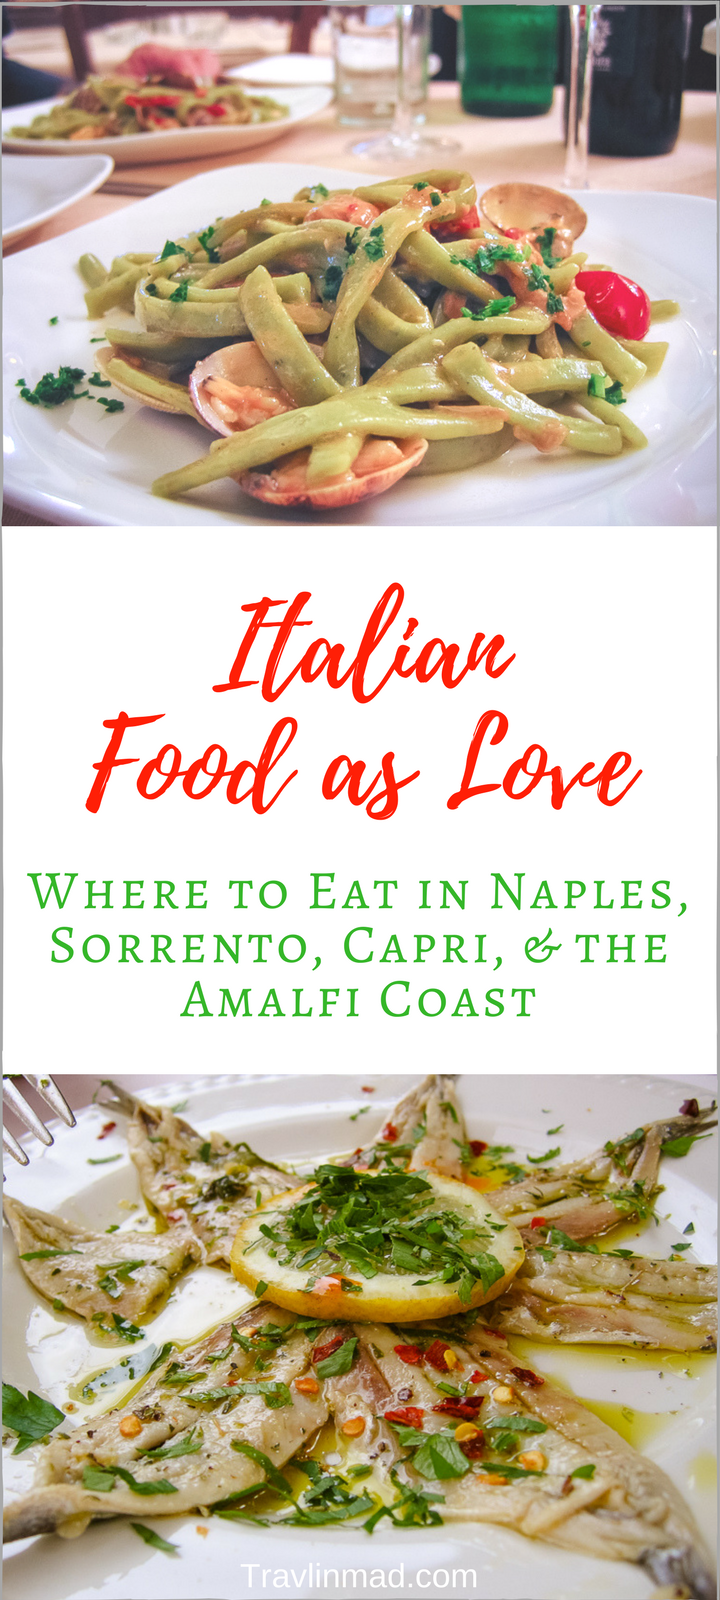 Where to Eat in Sorrento, Naples, Capri, and the Amalfi Coast